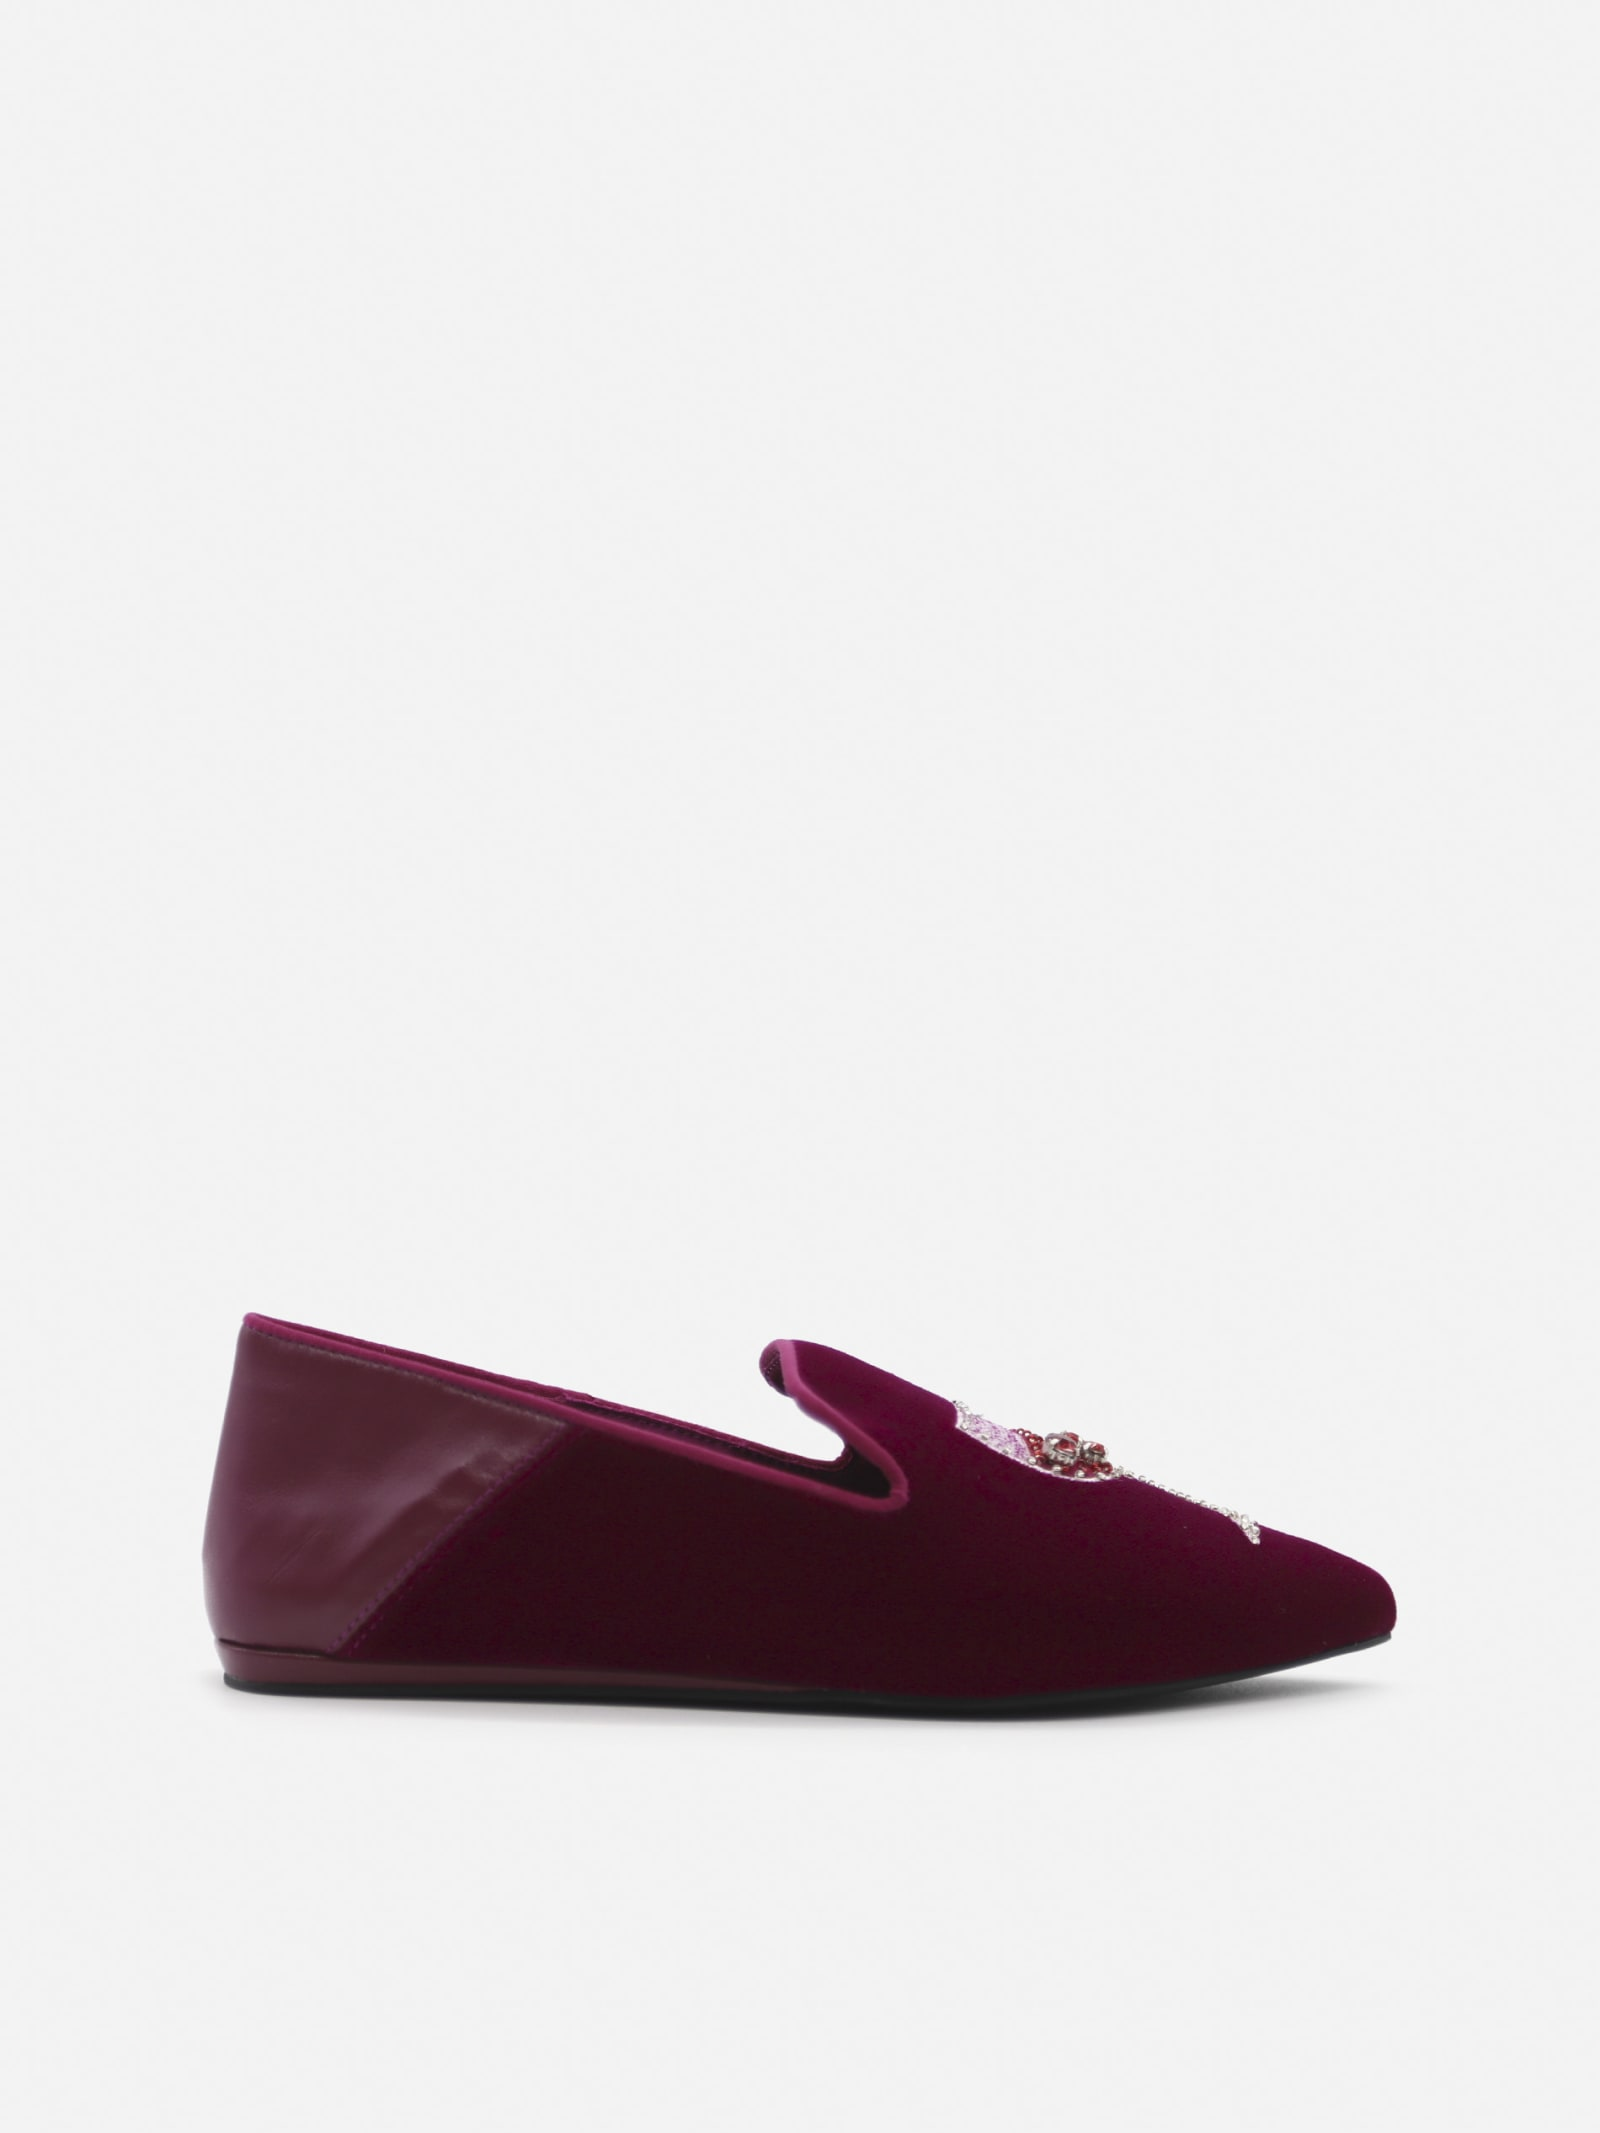 Velvet Loafers With Embroidery And Beads